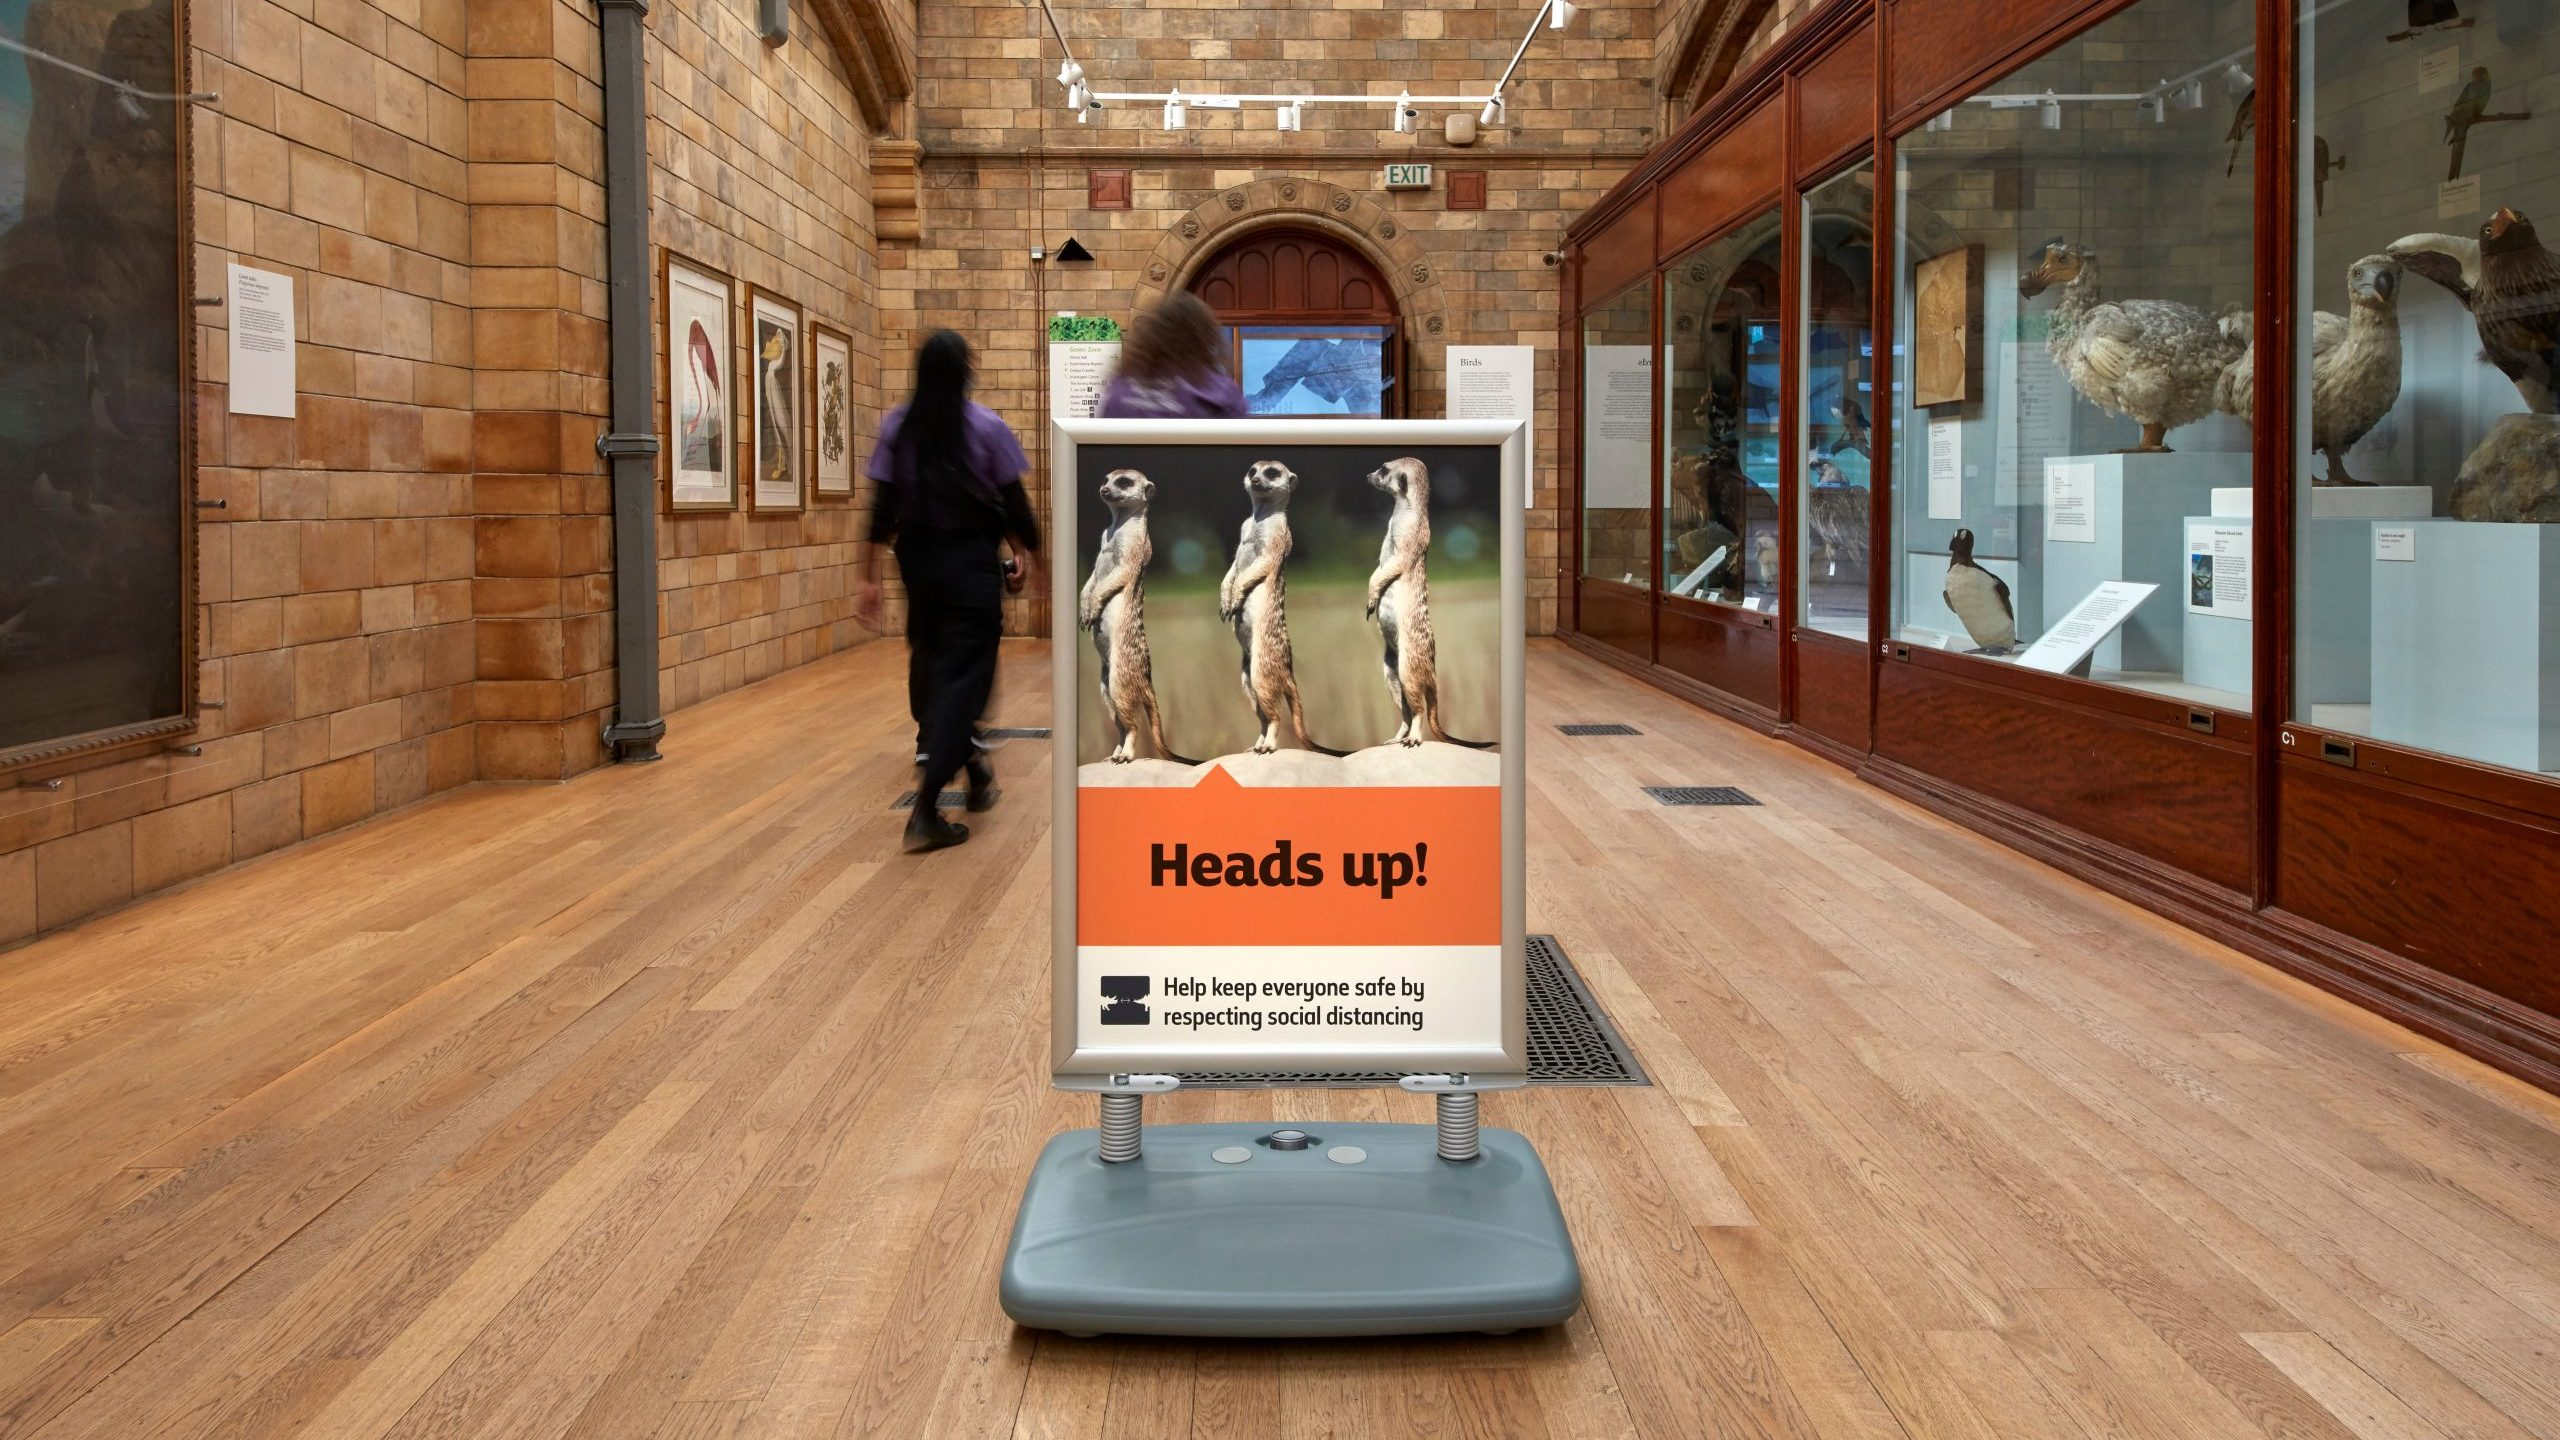 Institutions such as the Natural History Museum are continuing to limit visitor numbers